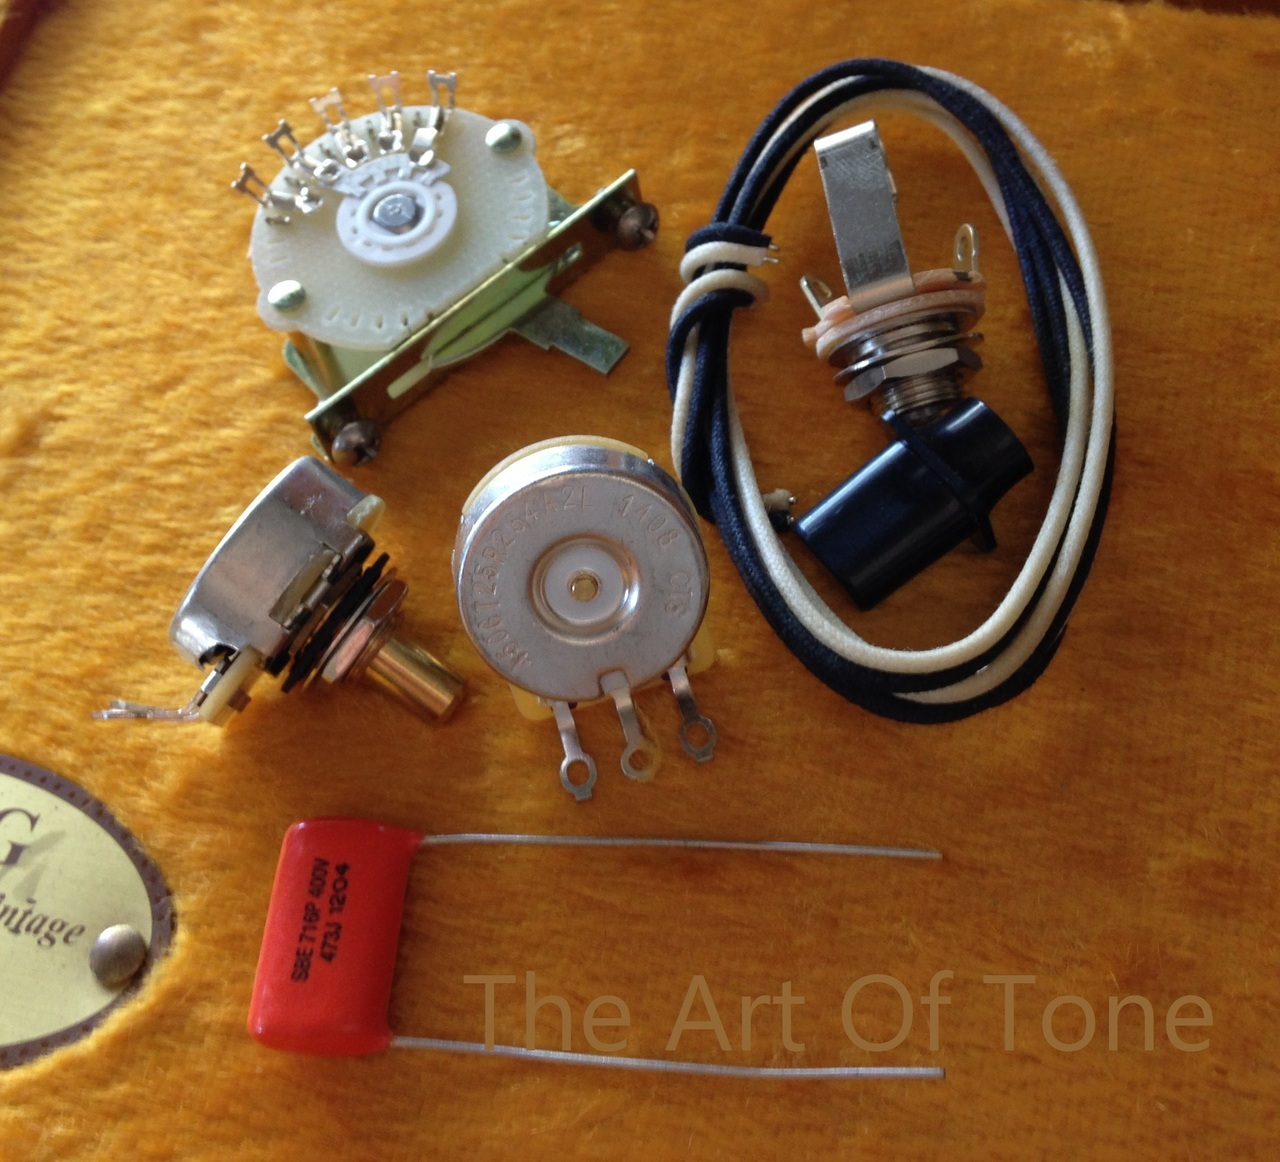 hight resolution of deluxe tele 4 way wiring kit telecaster cts 450g pots 047uf orange drop cap